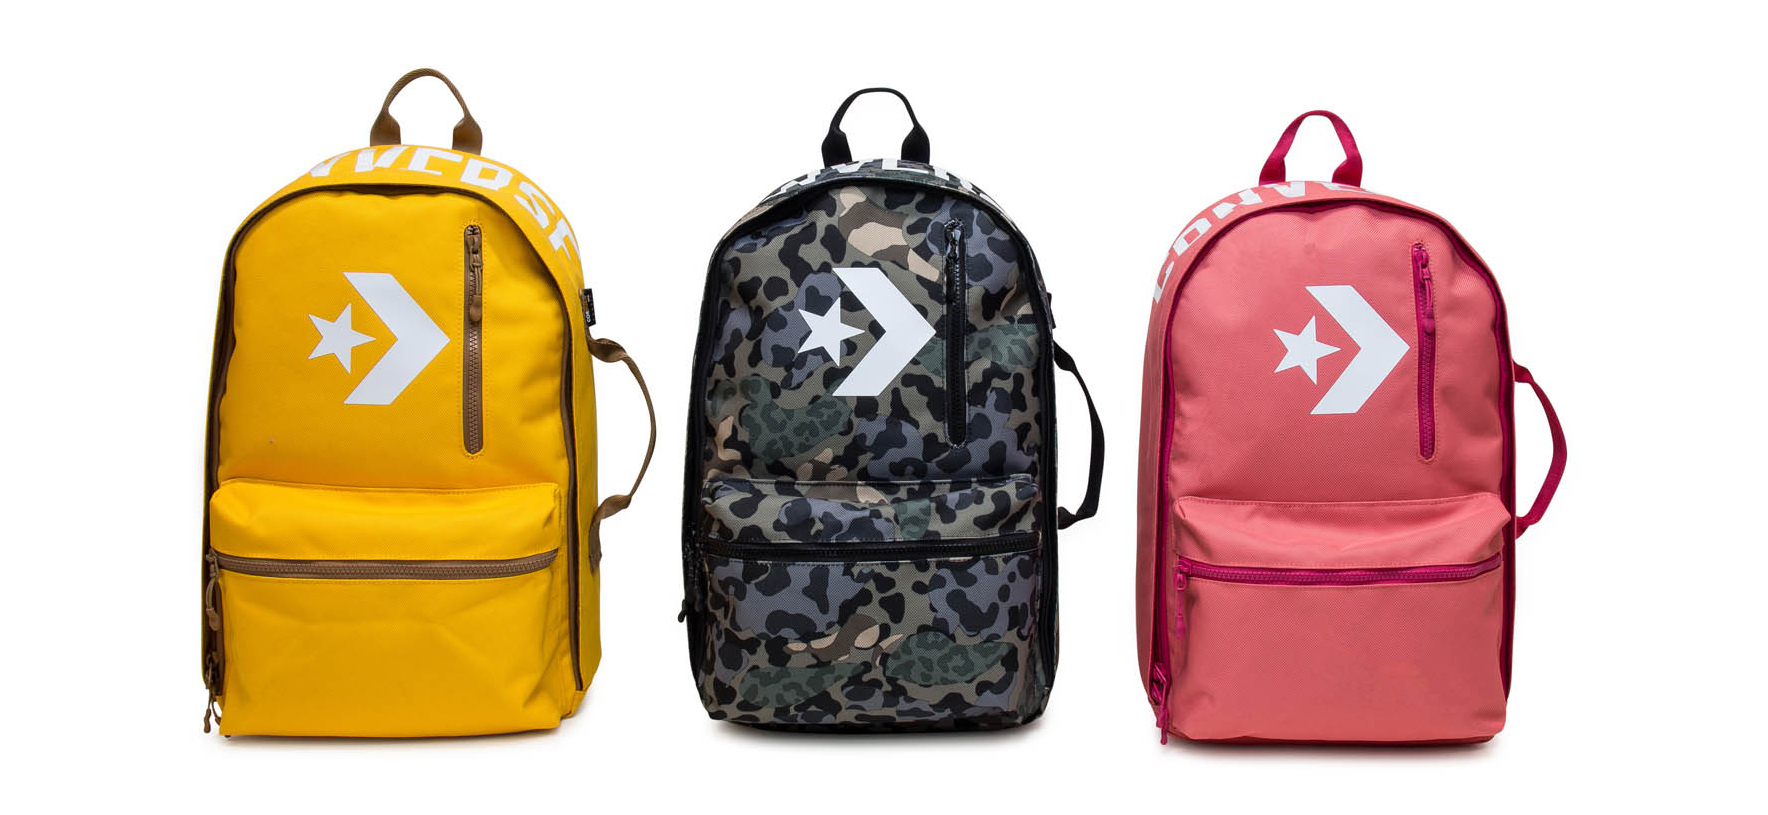 Three converse bags of different colors displayed side-by-side